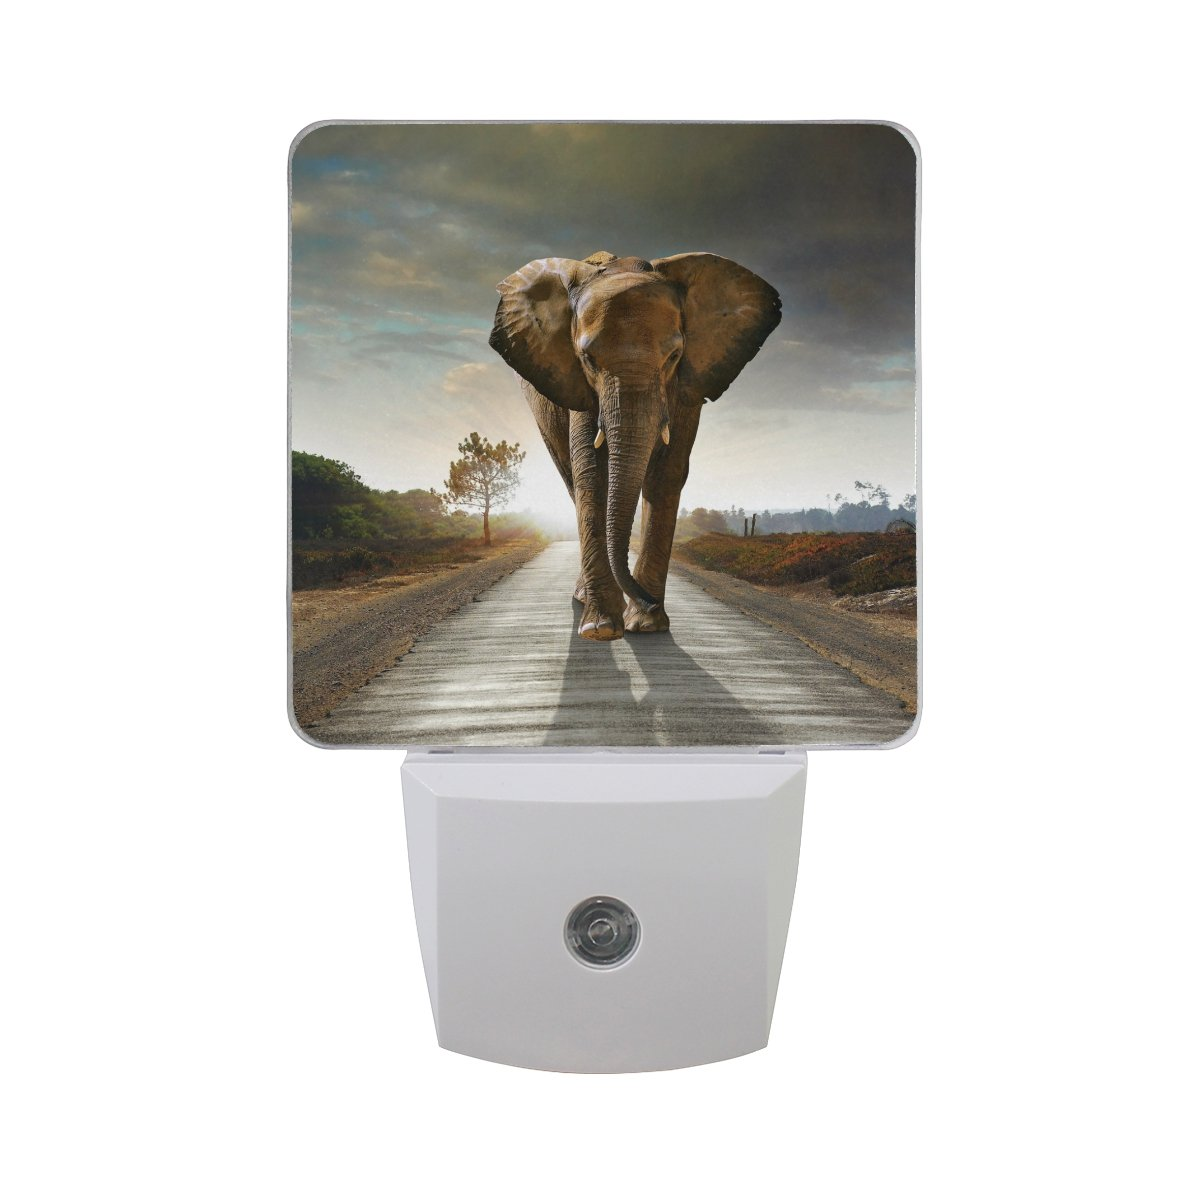 TropicalLife Set of 2 Goodnight 3D Animal African Elephant Theme LED Night Light Dusk to Dawn Sensor Plug in Designs Indoor Home Decor for Adult Kids Baby Children